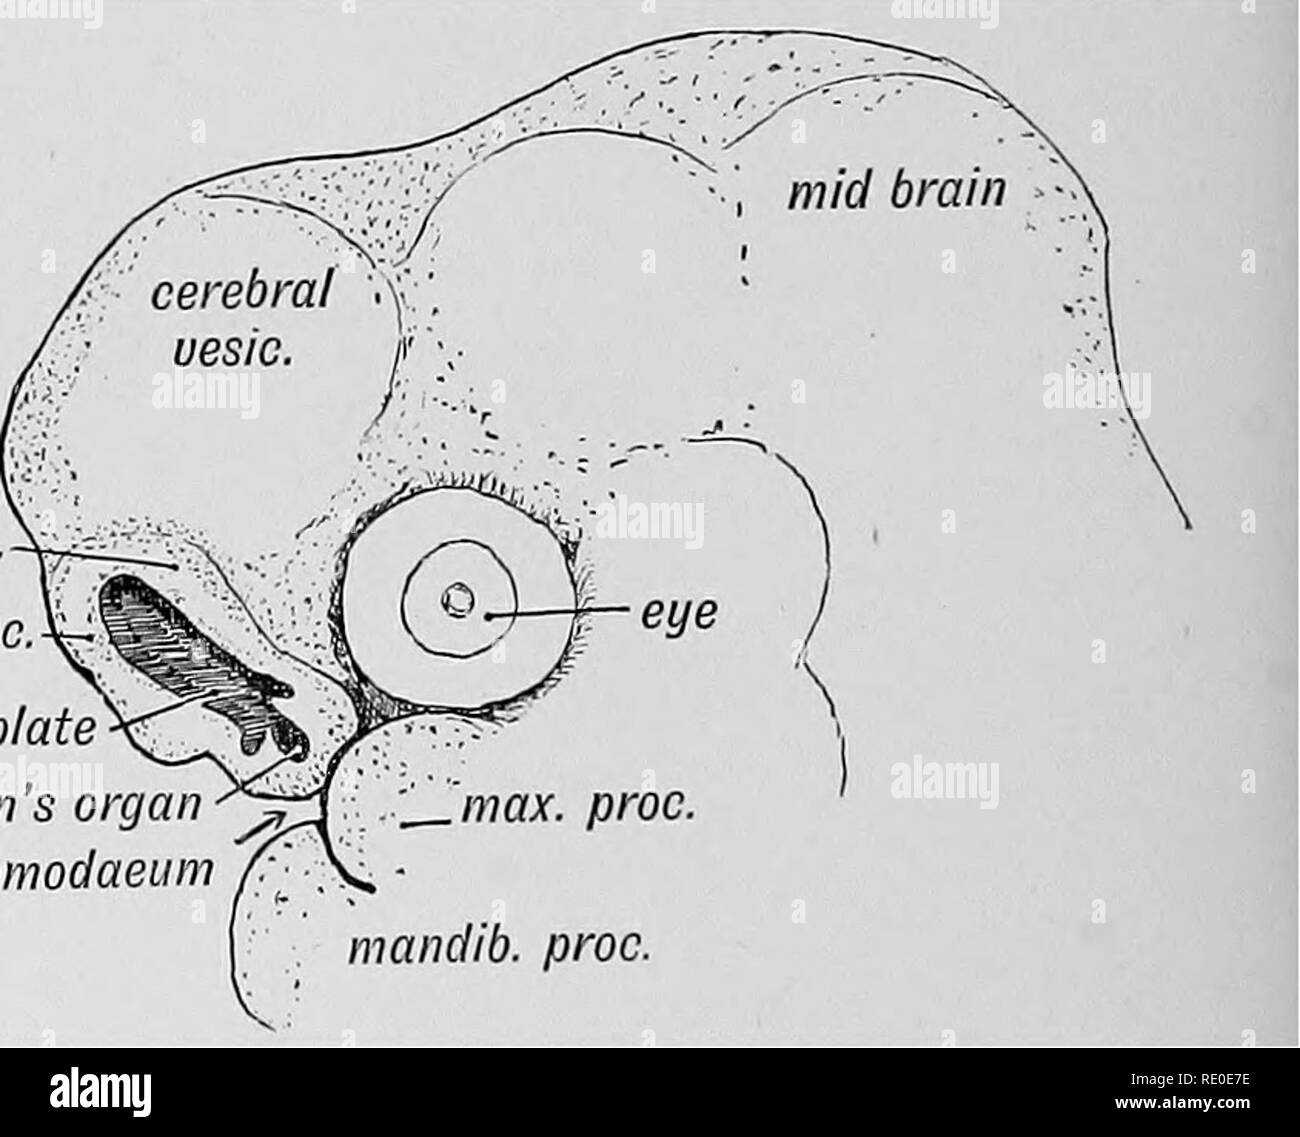 Parts Of The Brain Black and White Stock Photos & Images - Alamy